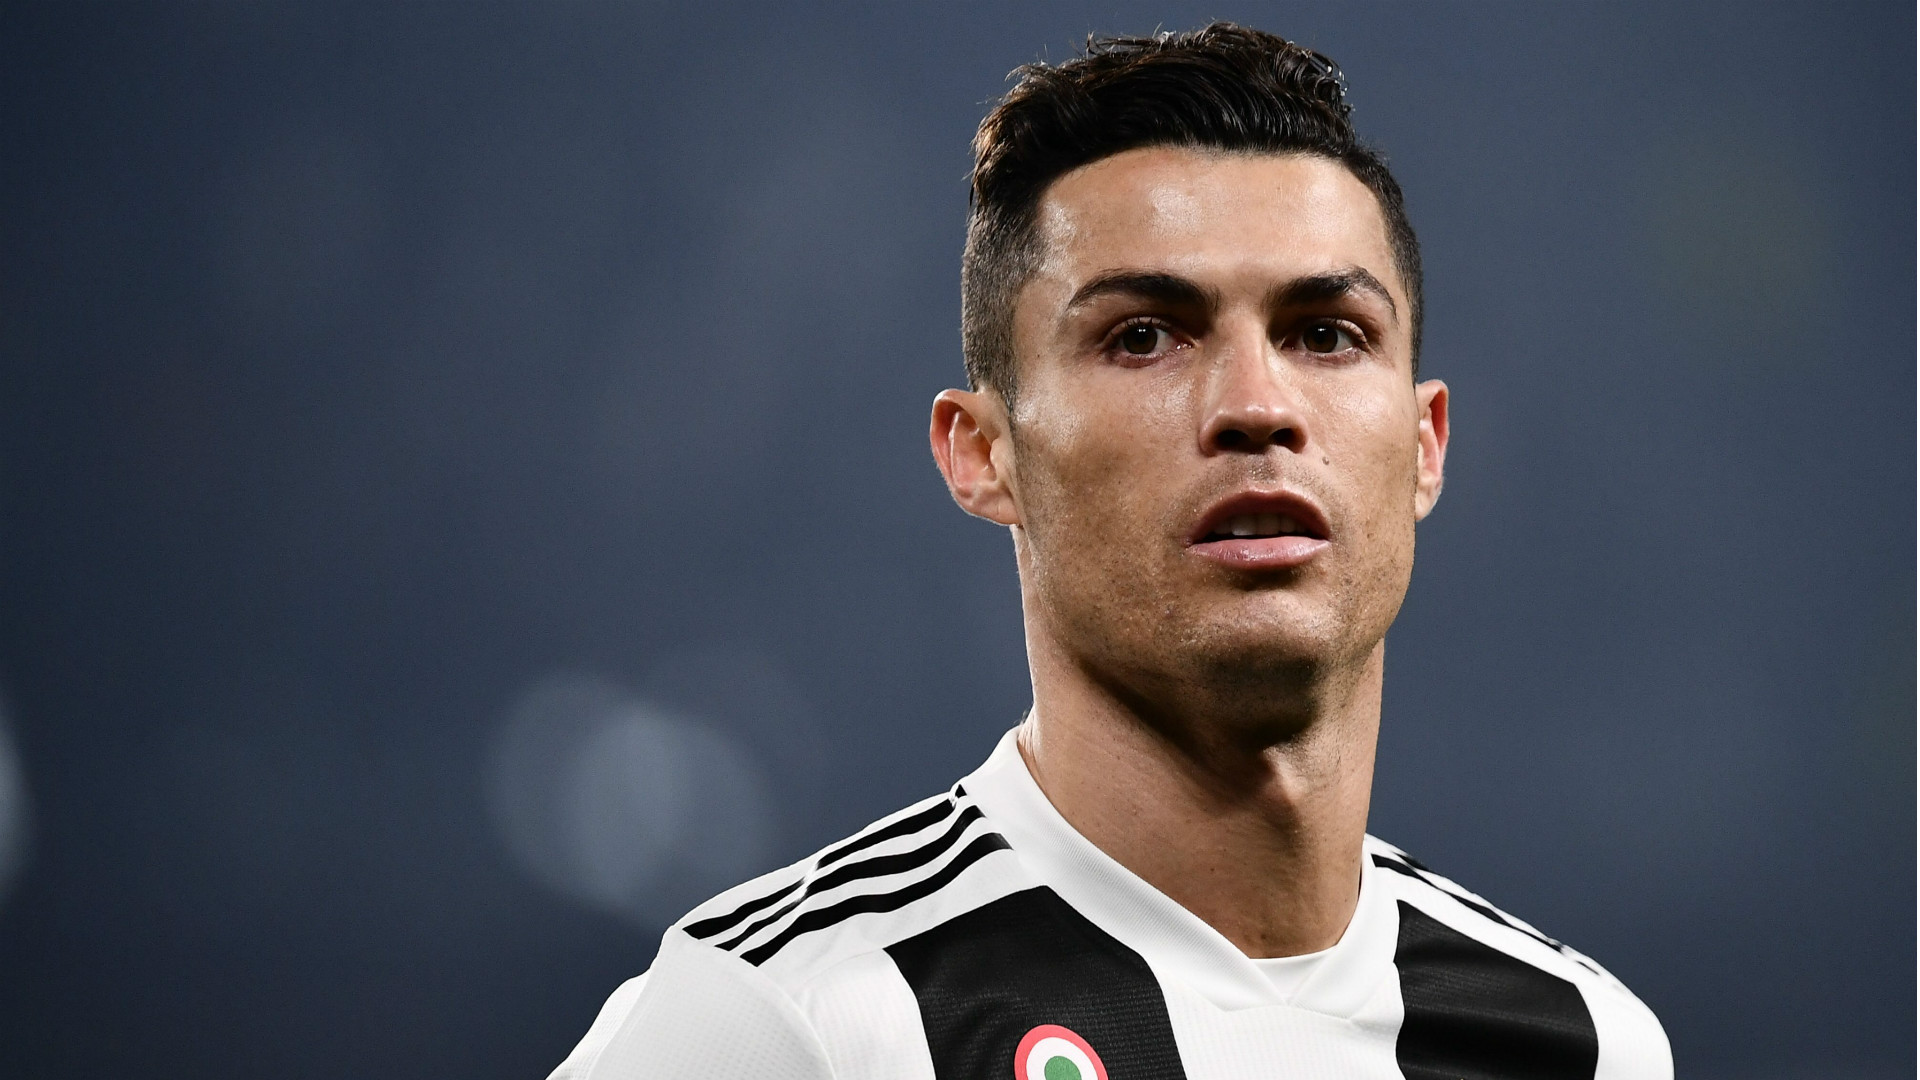 What is Cristiano Ronaldo's net worth and how much does the Juventus star earn?